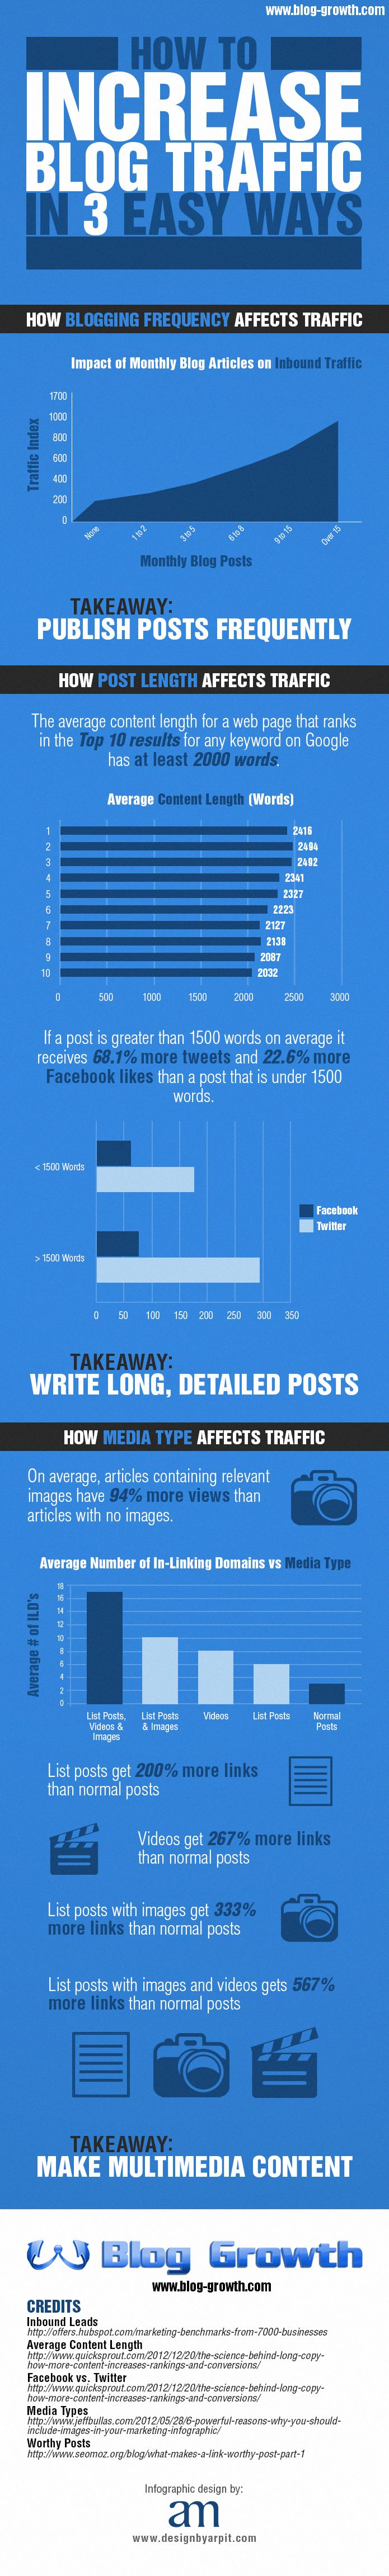 How to increase blog traffics in 3 easy ways #infographic http://www.helpmequitthe9to5.com traffic tips #traffic #tips #infographic #webtraffic